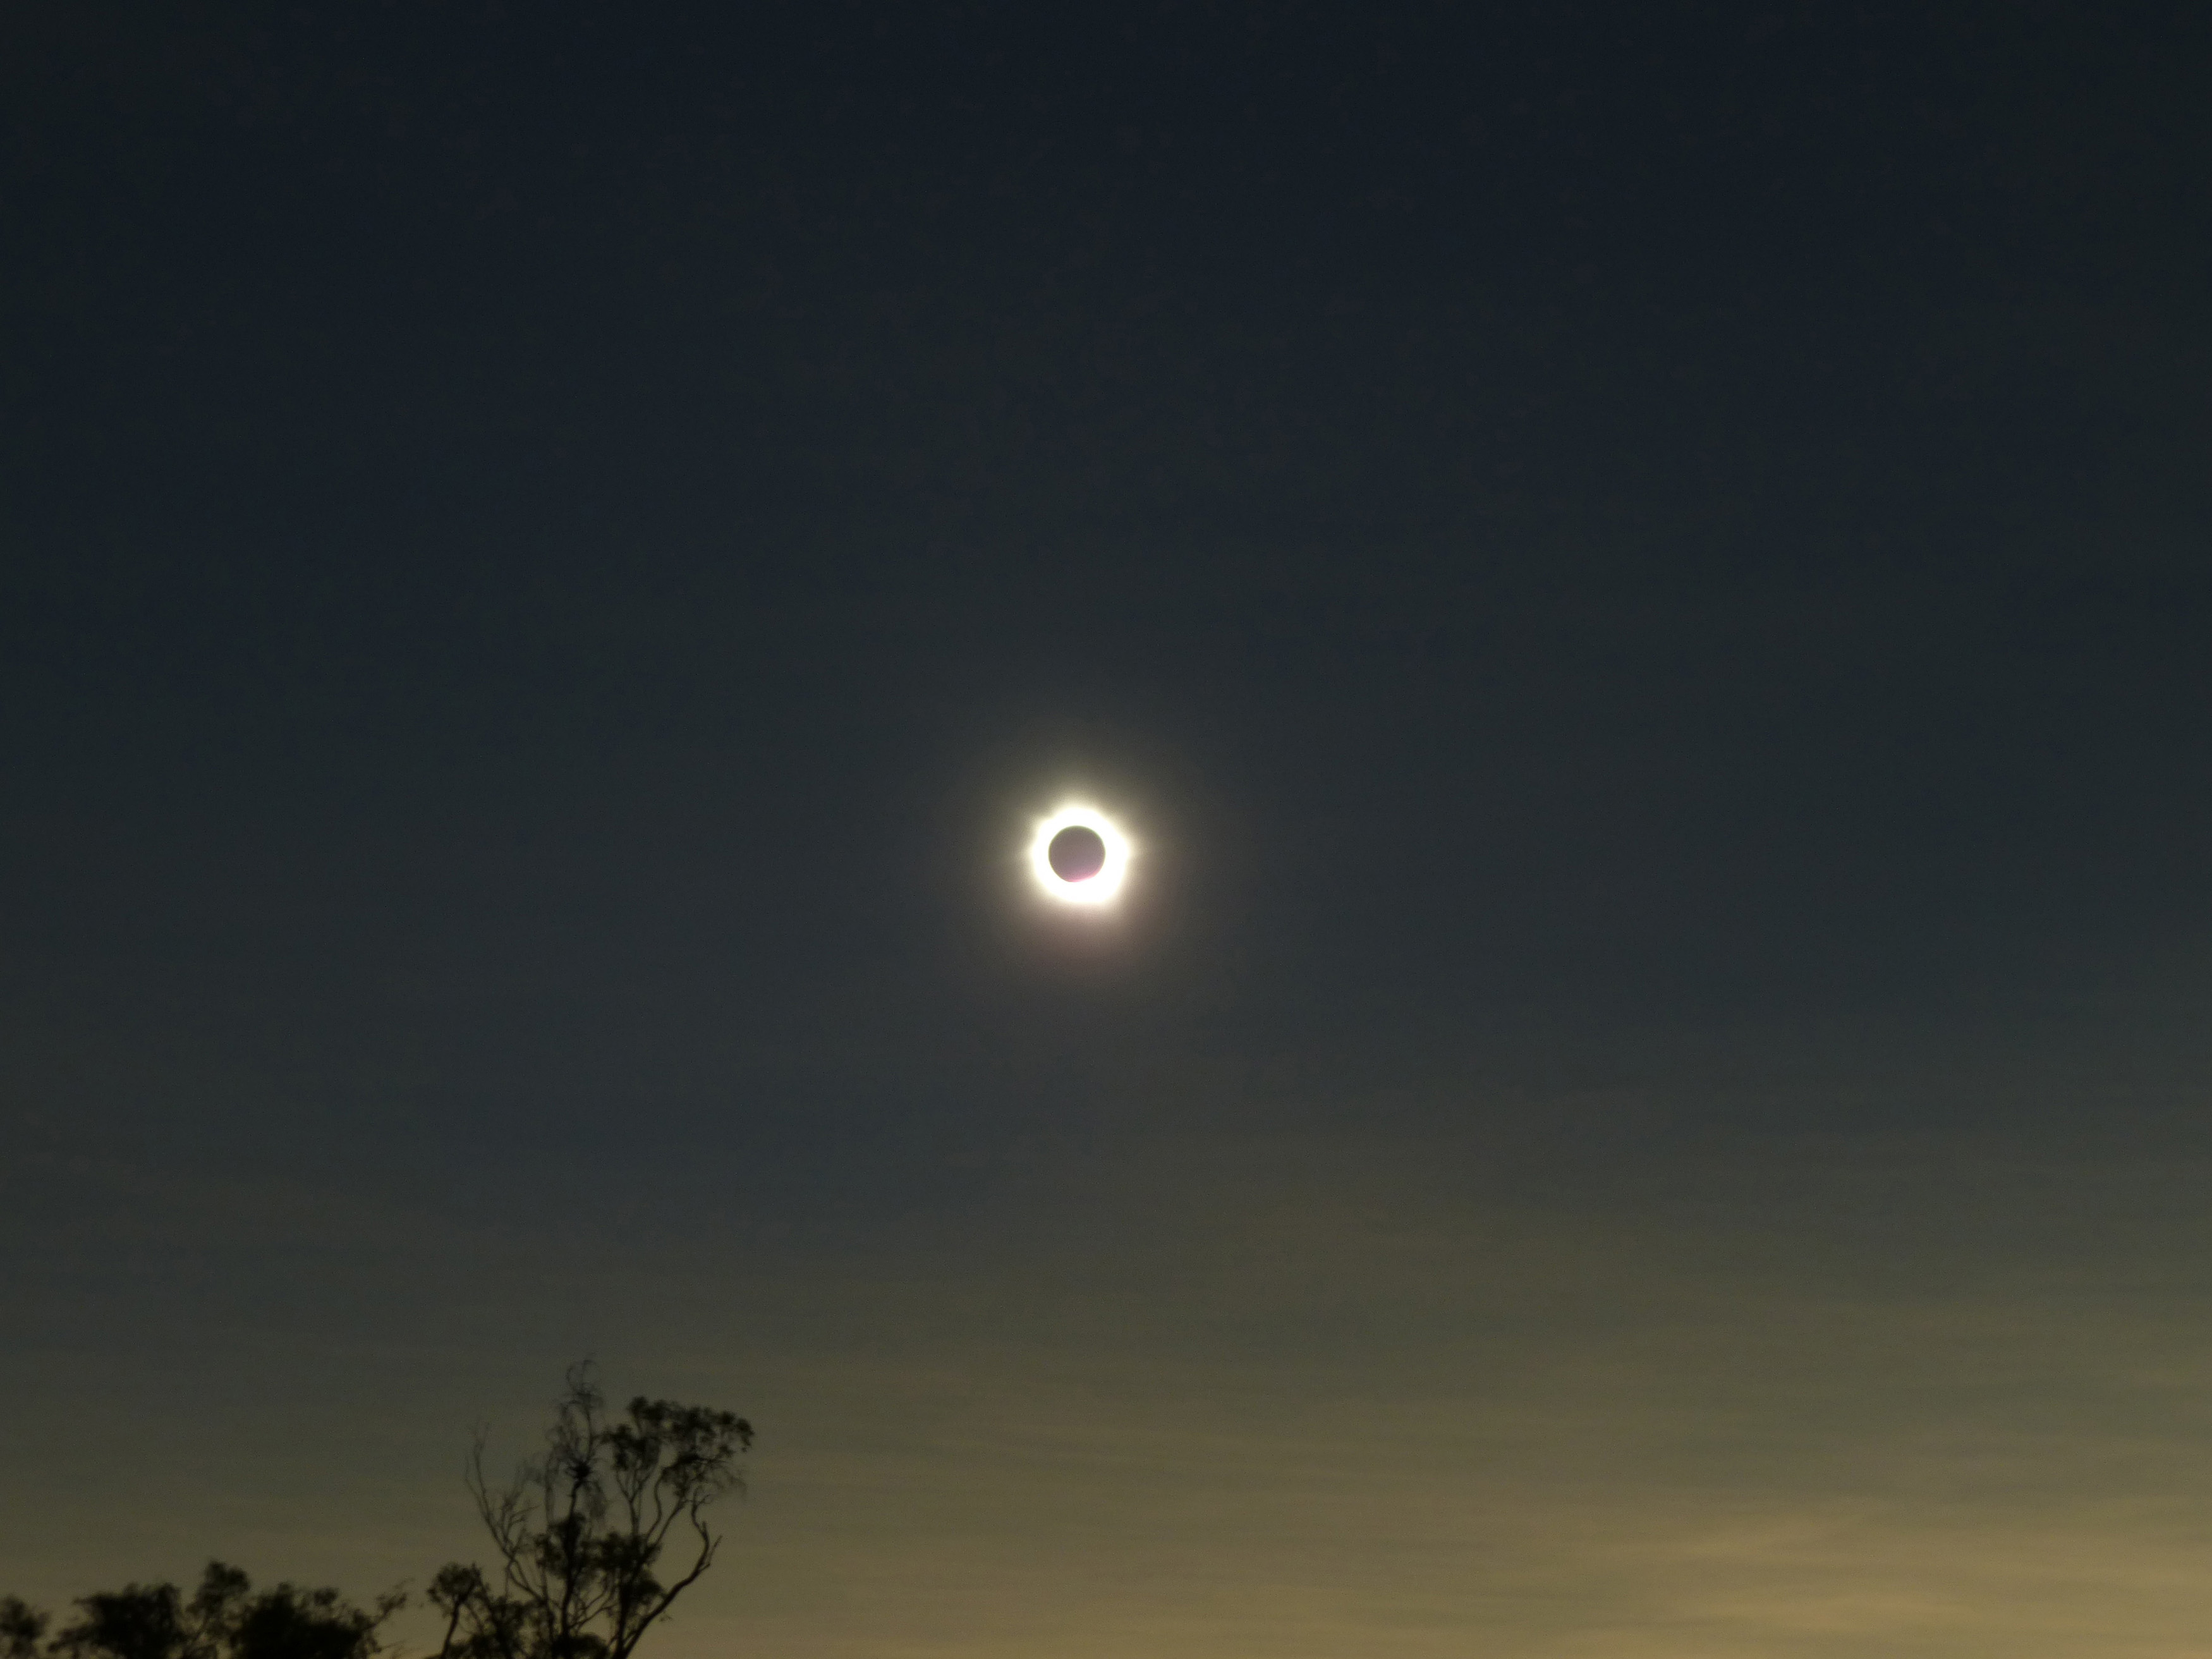 Solar eclipse with corona in a darkened sky as the moon passes between the sun and the earth obscuring the sun